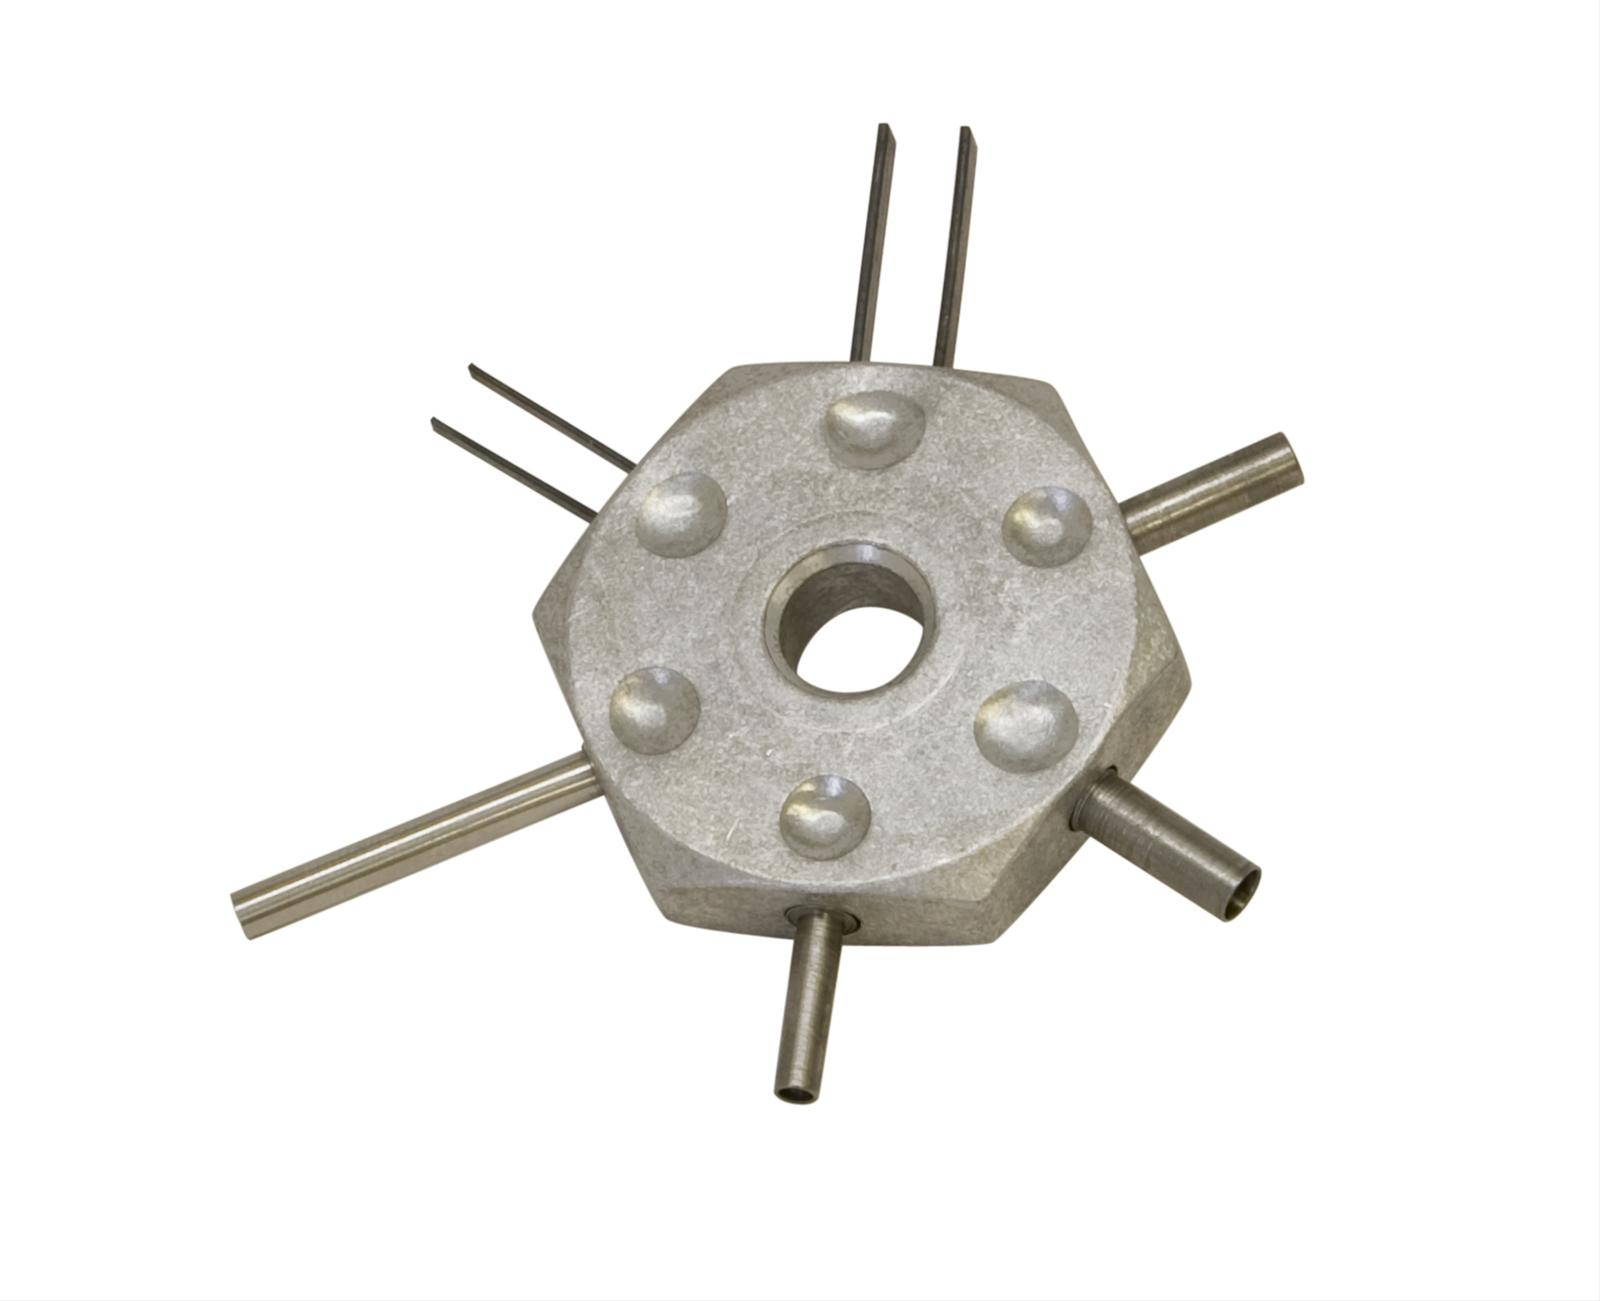 hight resolution of lisle wire terminal tools 56500 free shipping on orders over 99 at summit racing